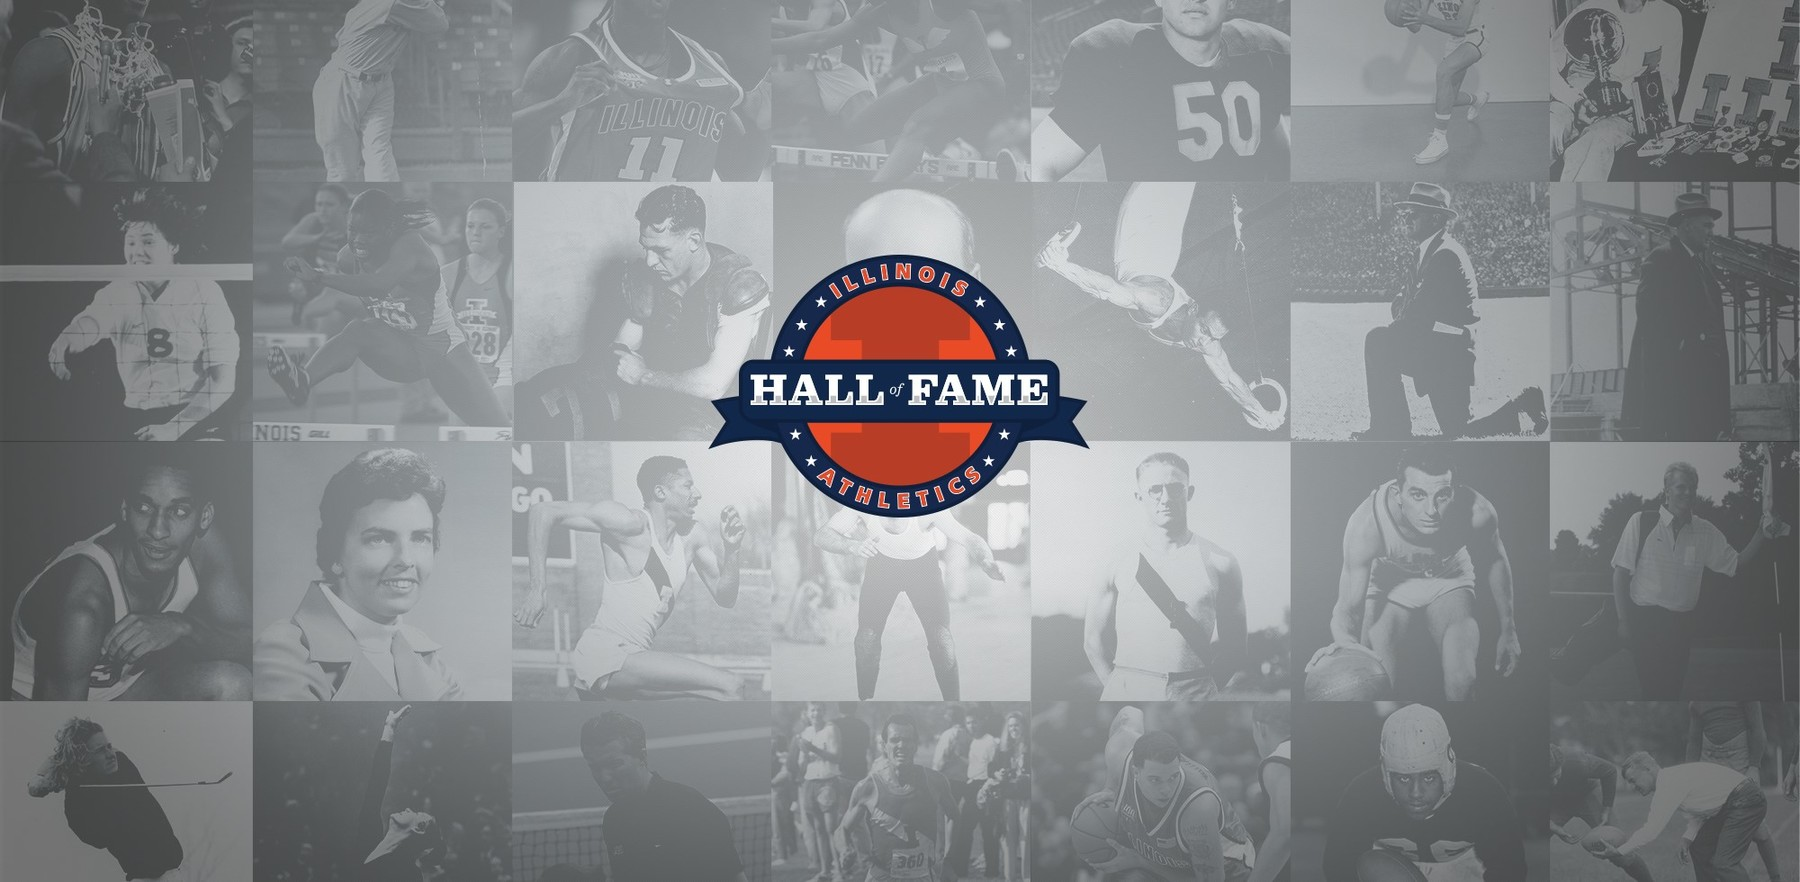 Illinois Athletic Hall fo Fame logo over images of inductees